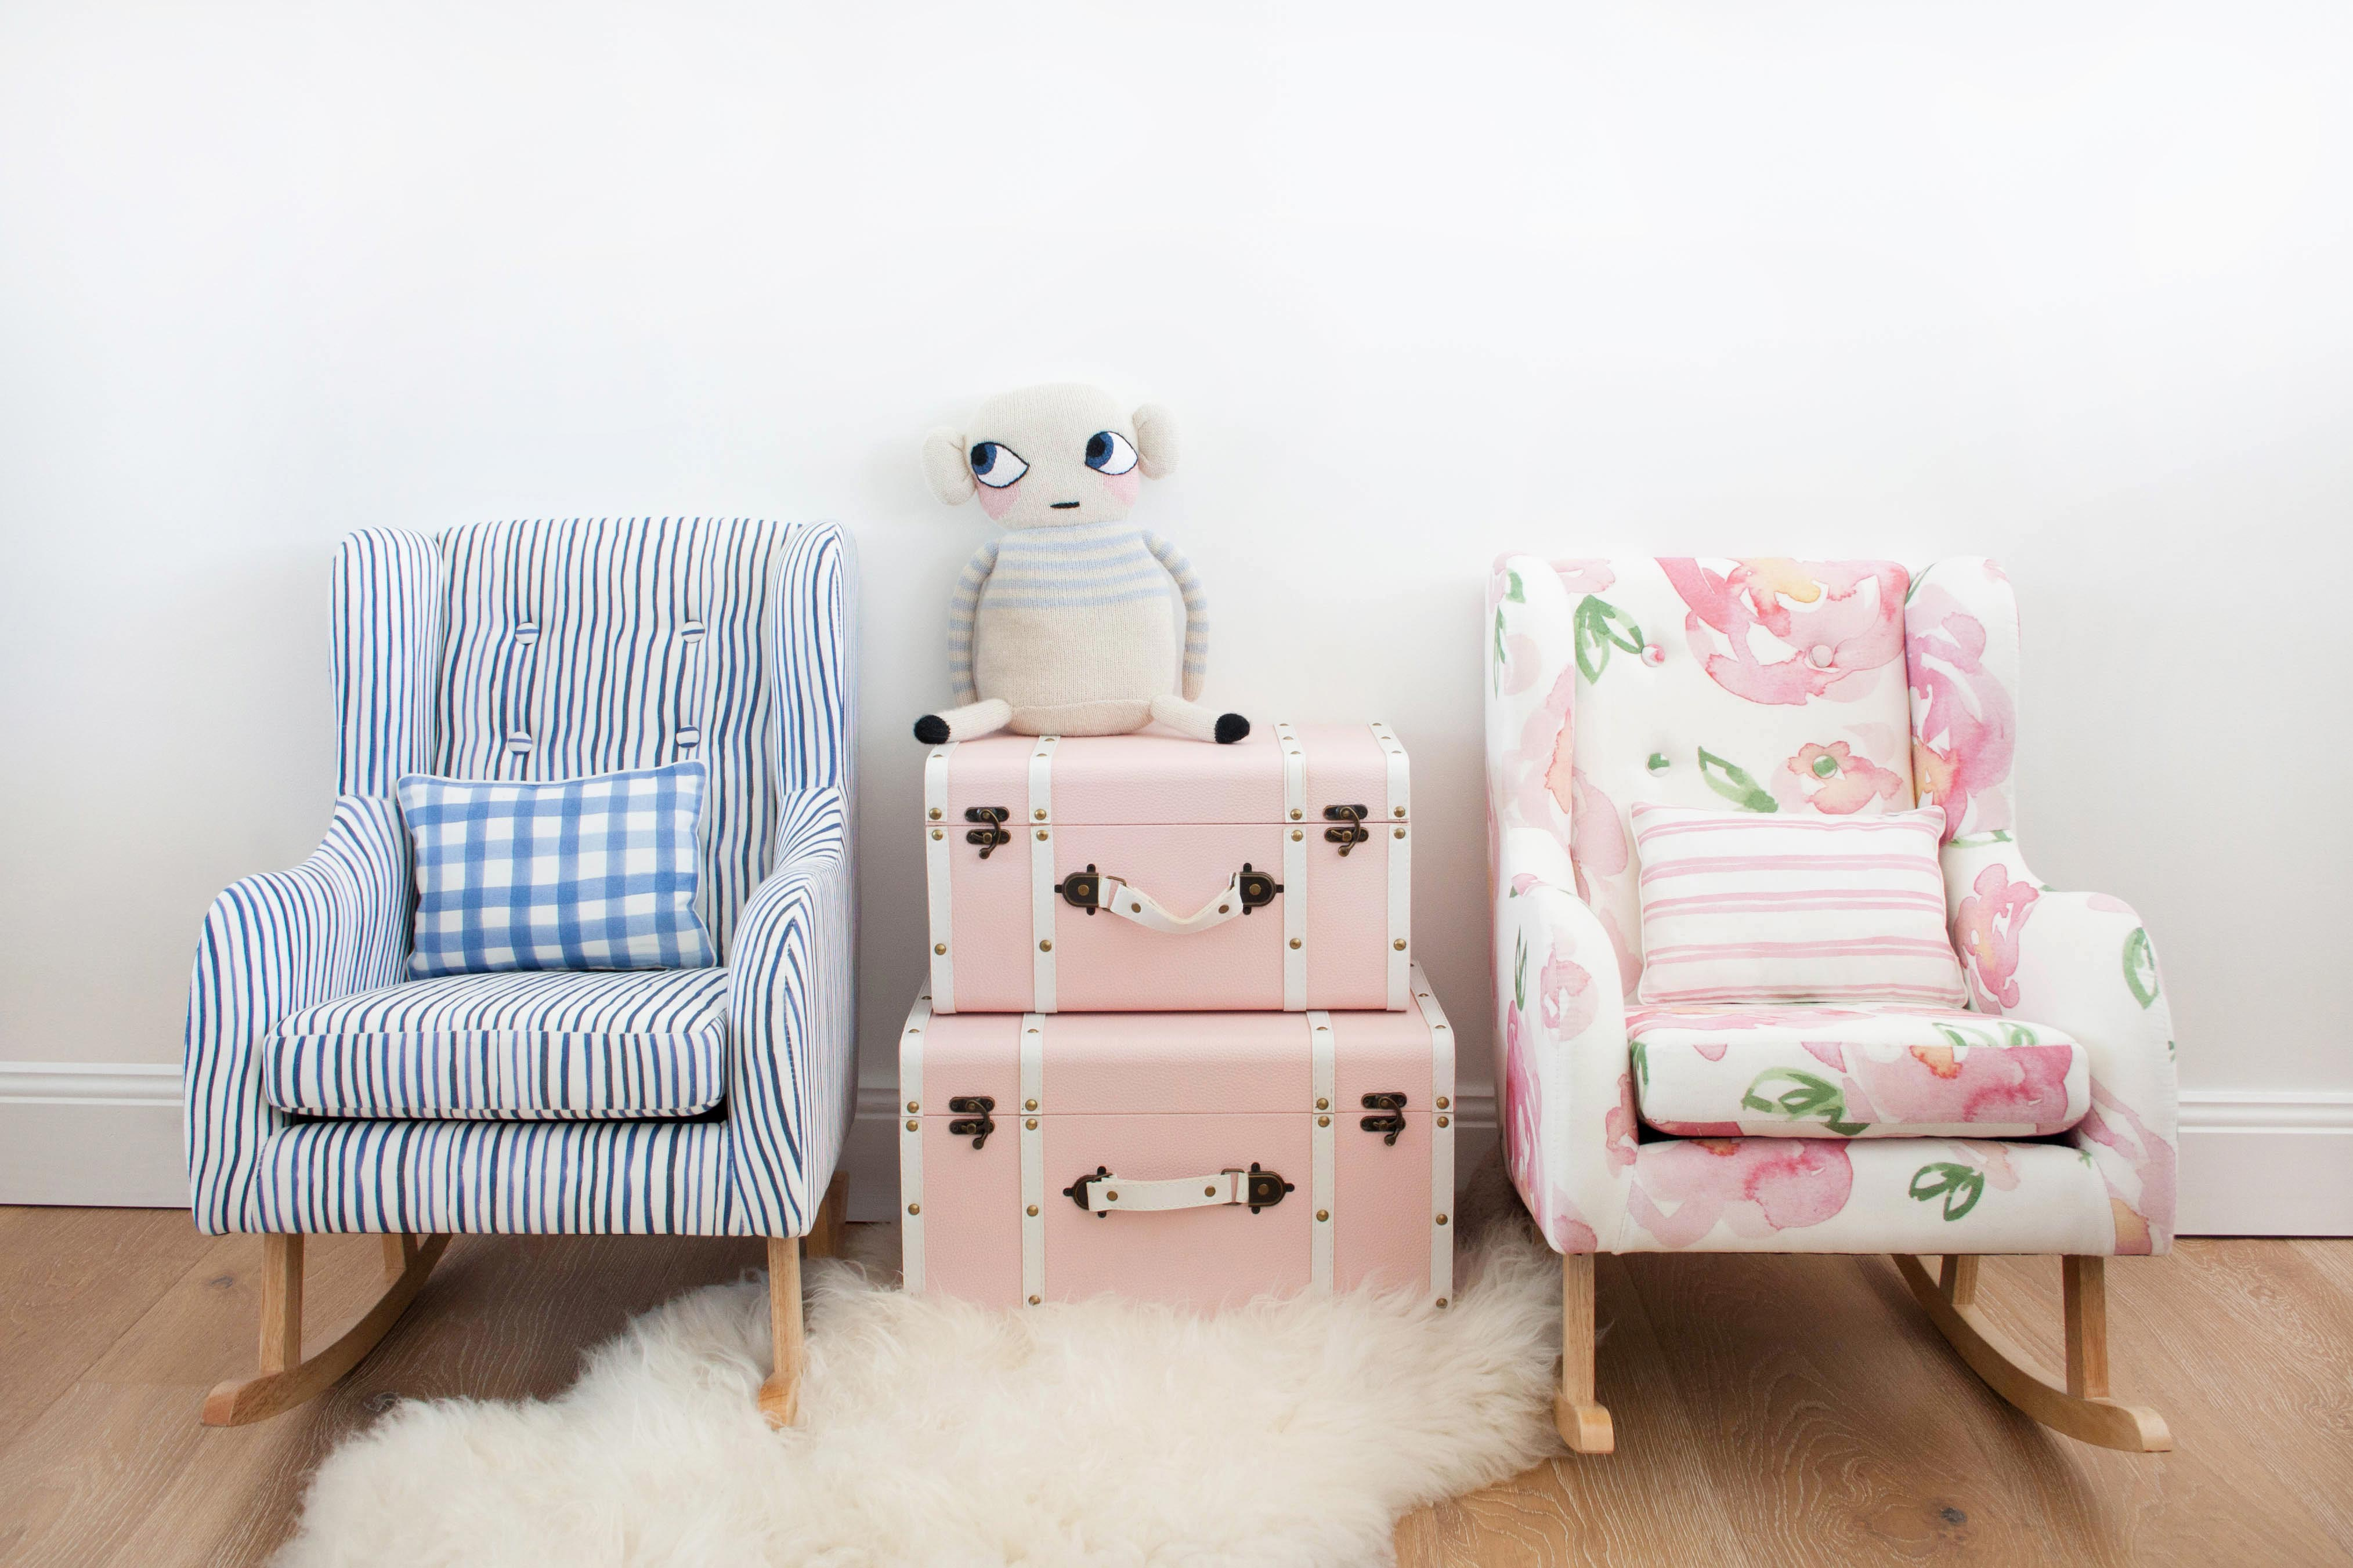 These are the most beautiful mini rocking chairs we've ever seen